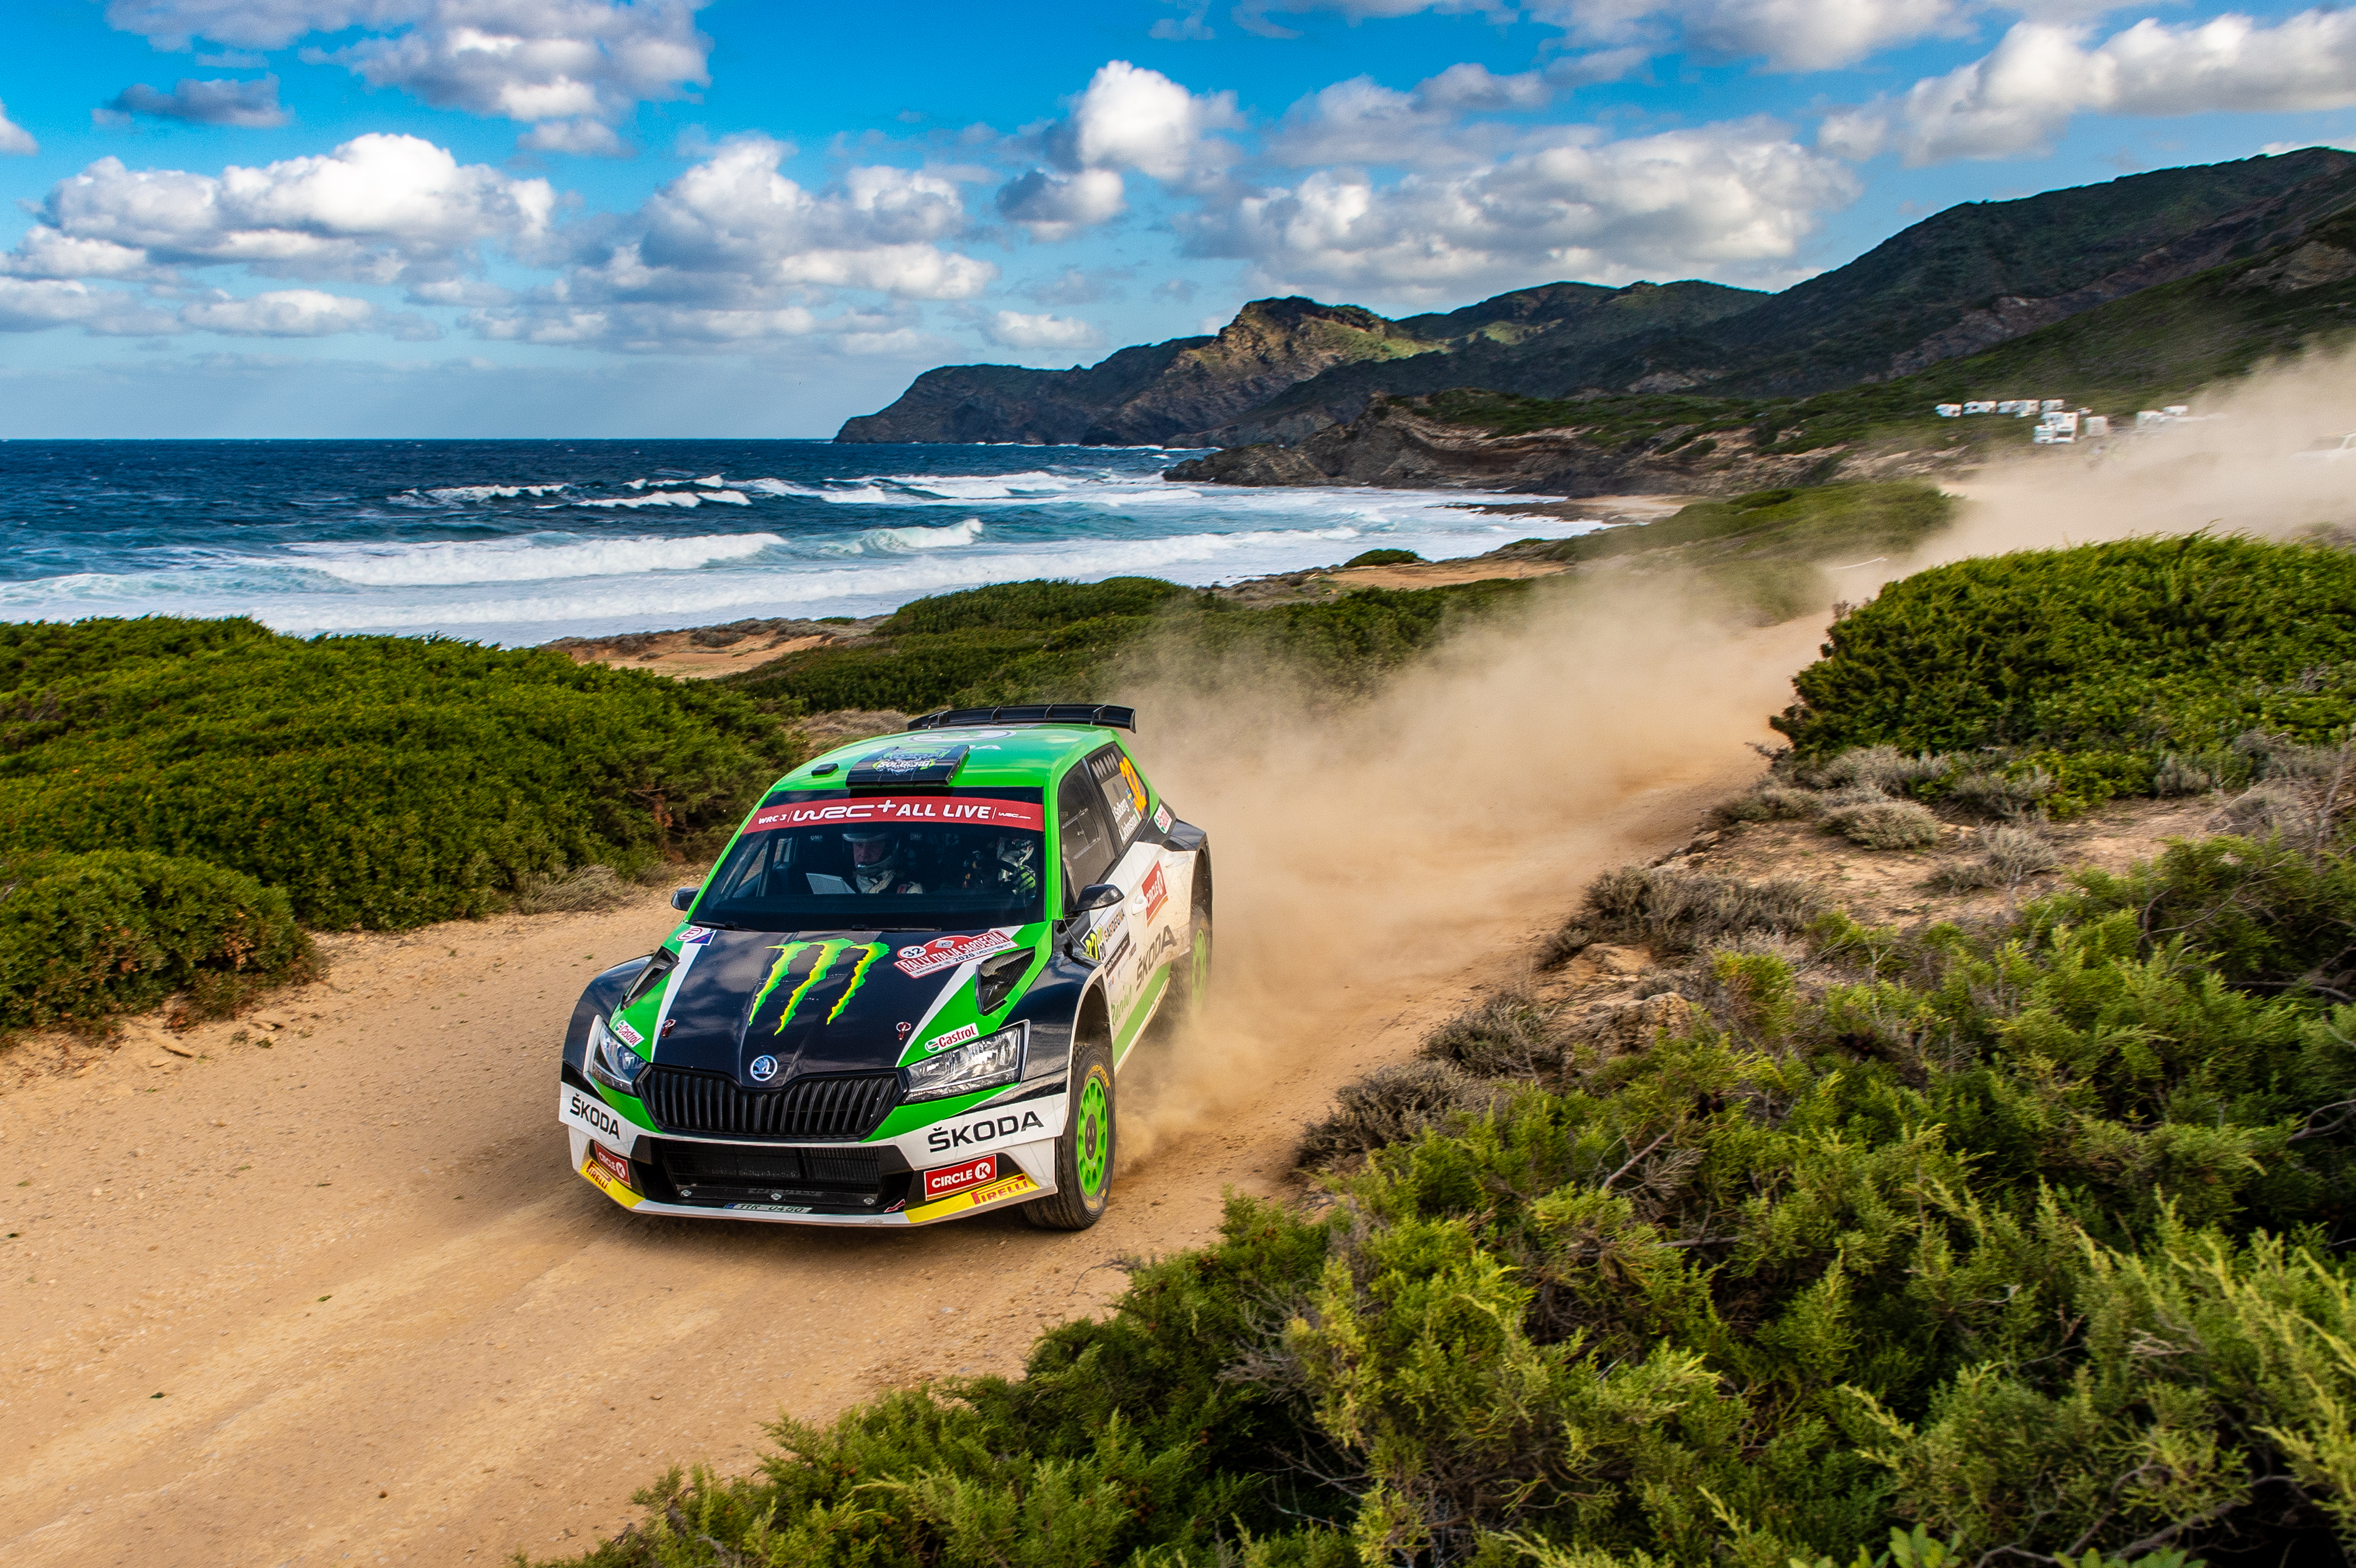 Rally Italia Sardegna: SKODA privateer Pontus Tidemand wins WRC2 and extends overall lead - Image 1